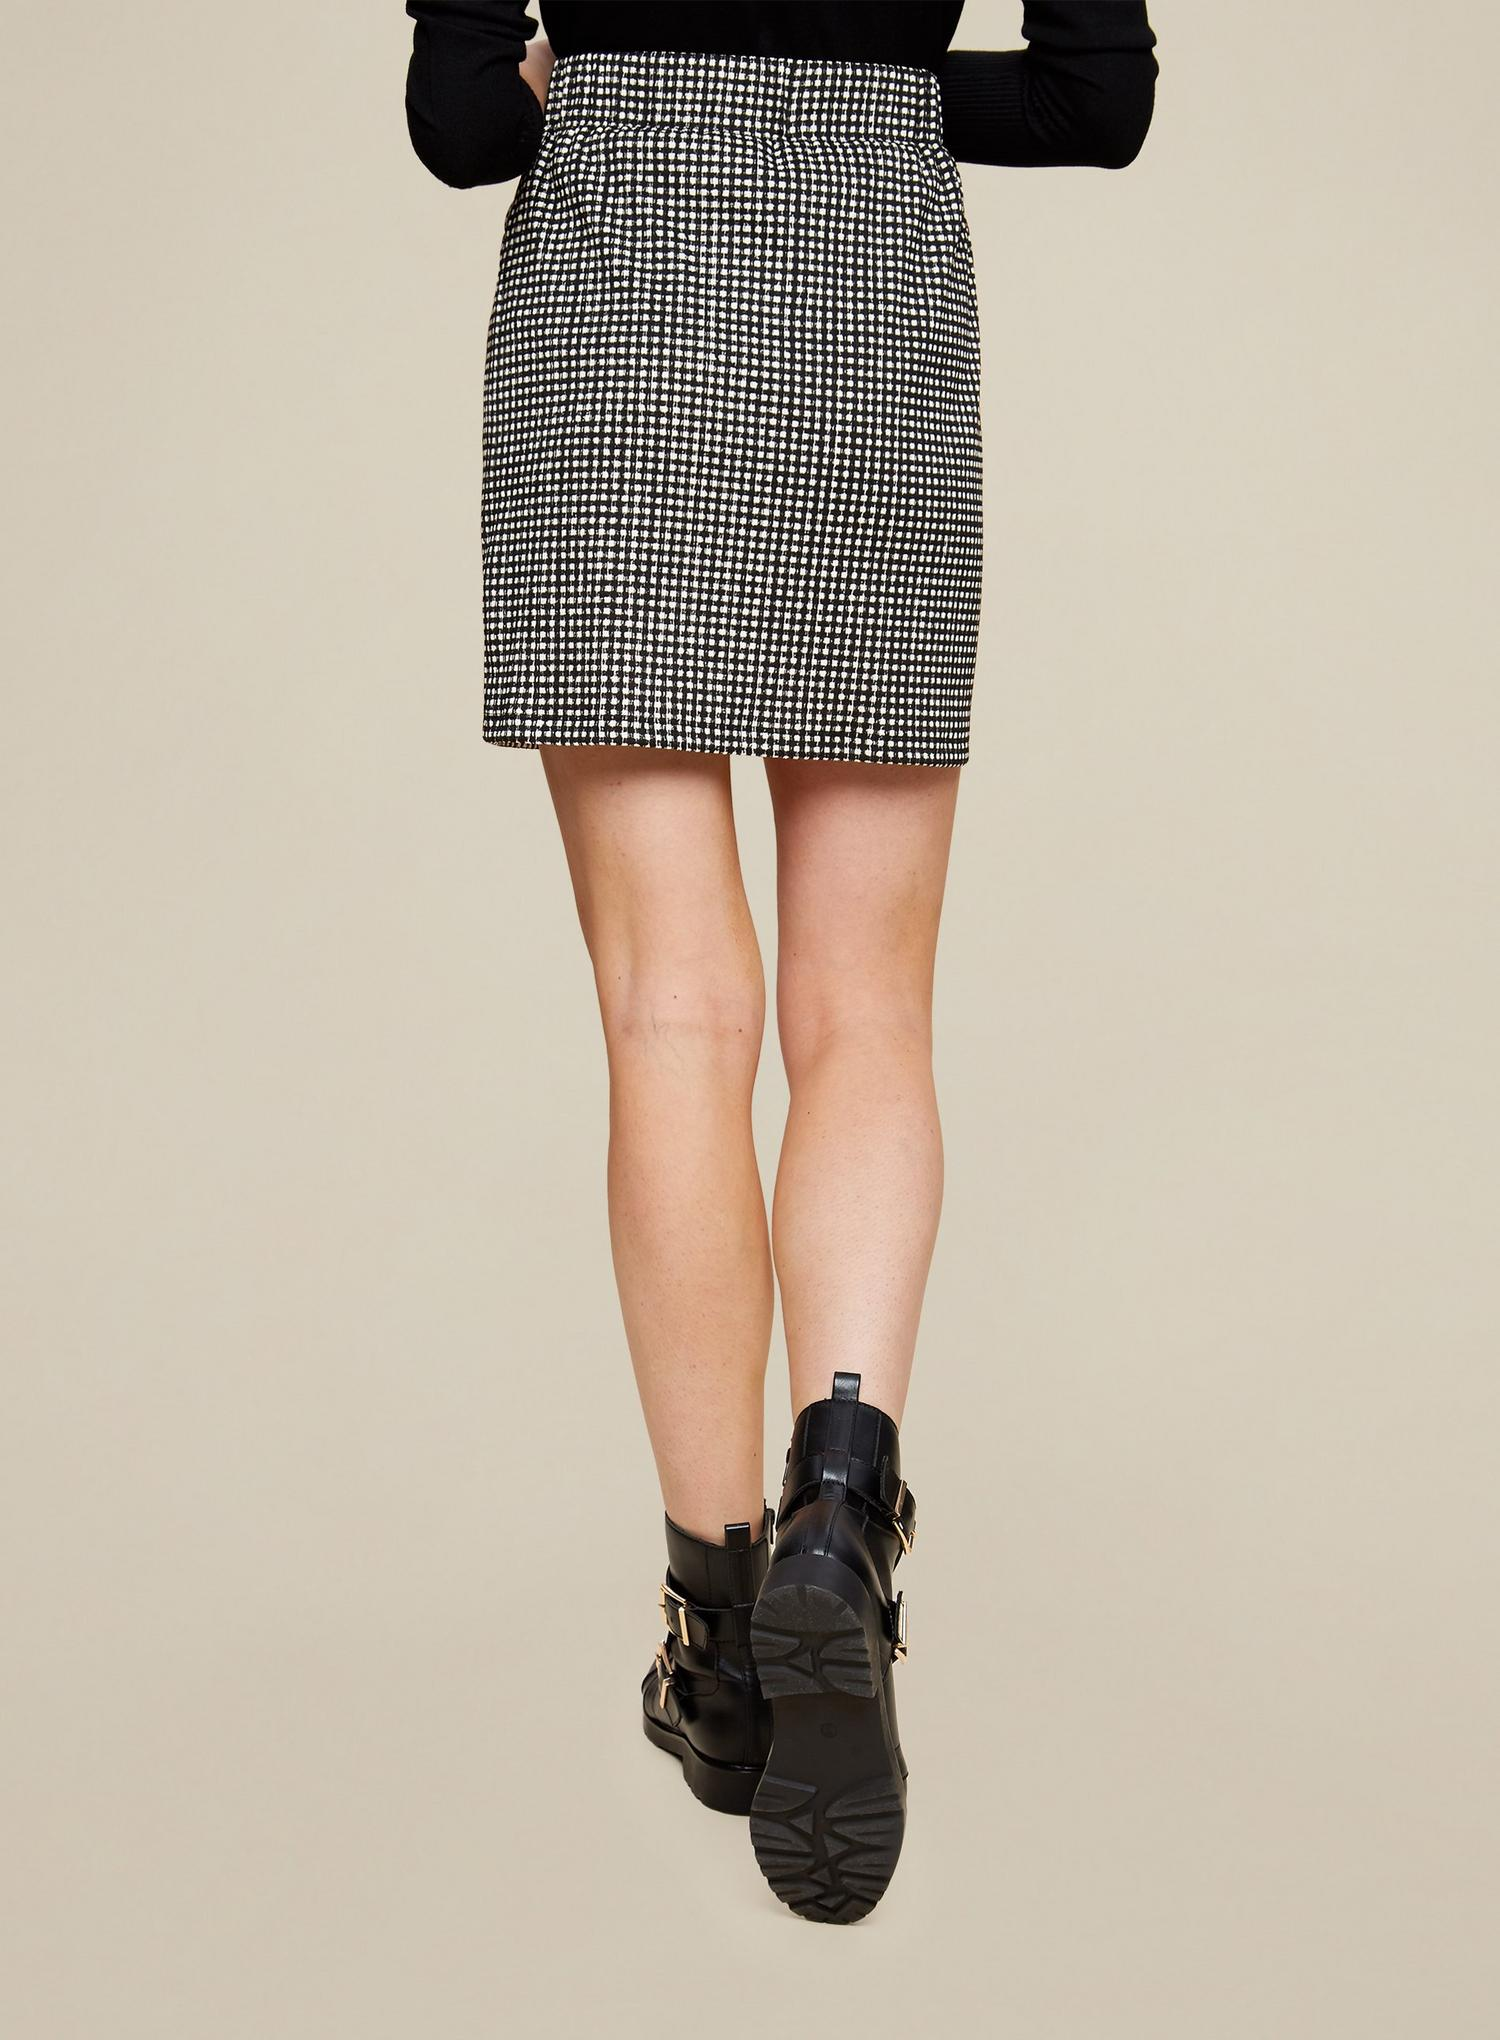 105 Black Gingham Button Front Mini Skirt image number 2